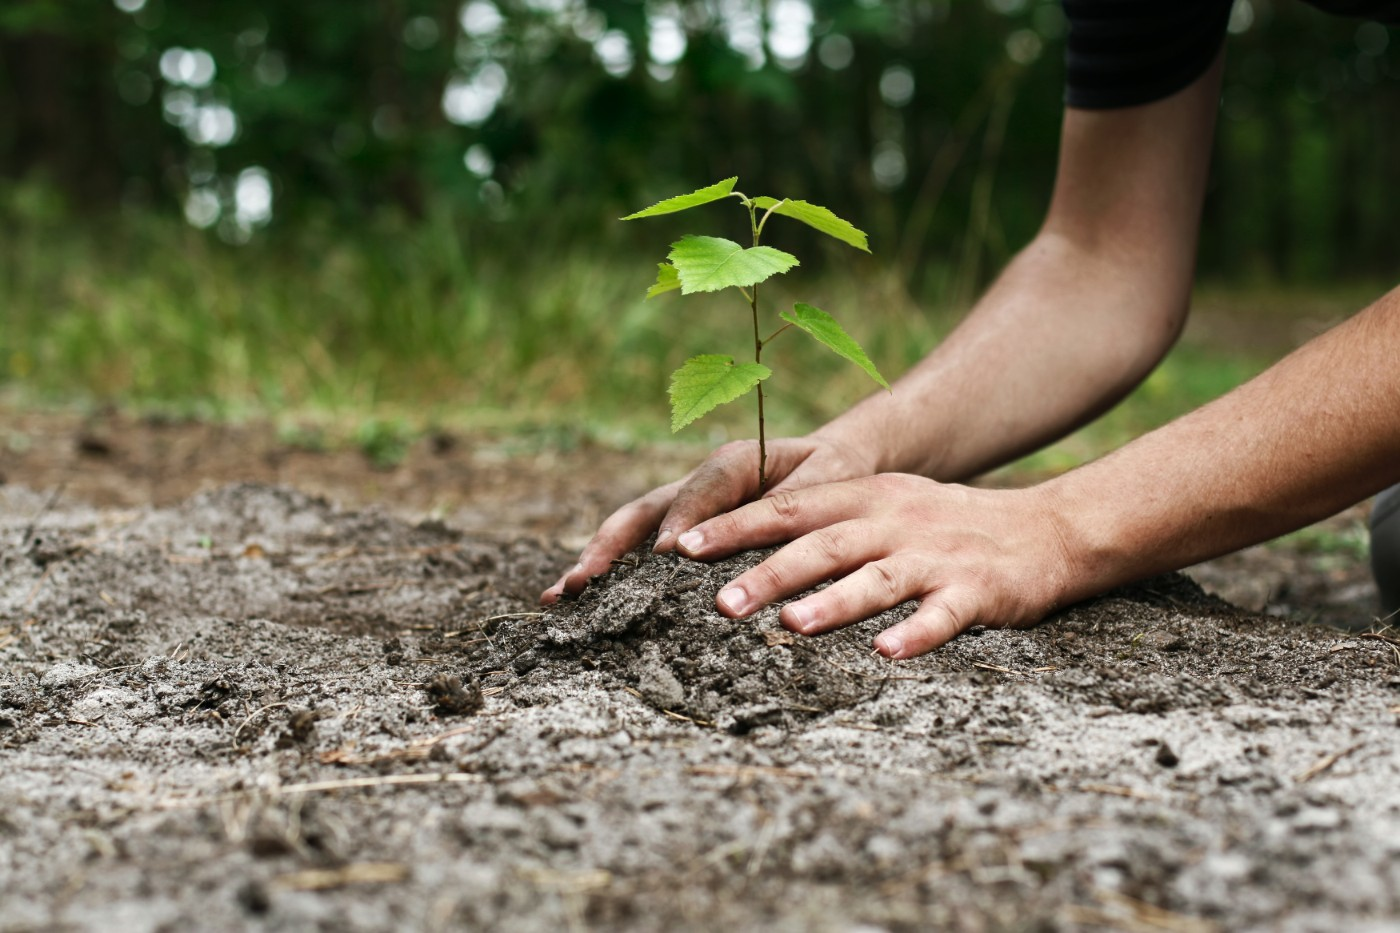 https://tickertapecdn.tdameritrade.com/assets/images/pages/md/close-up of hands planting a leafy plant: environmental, social, and governance investing